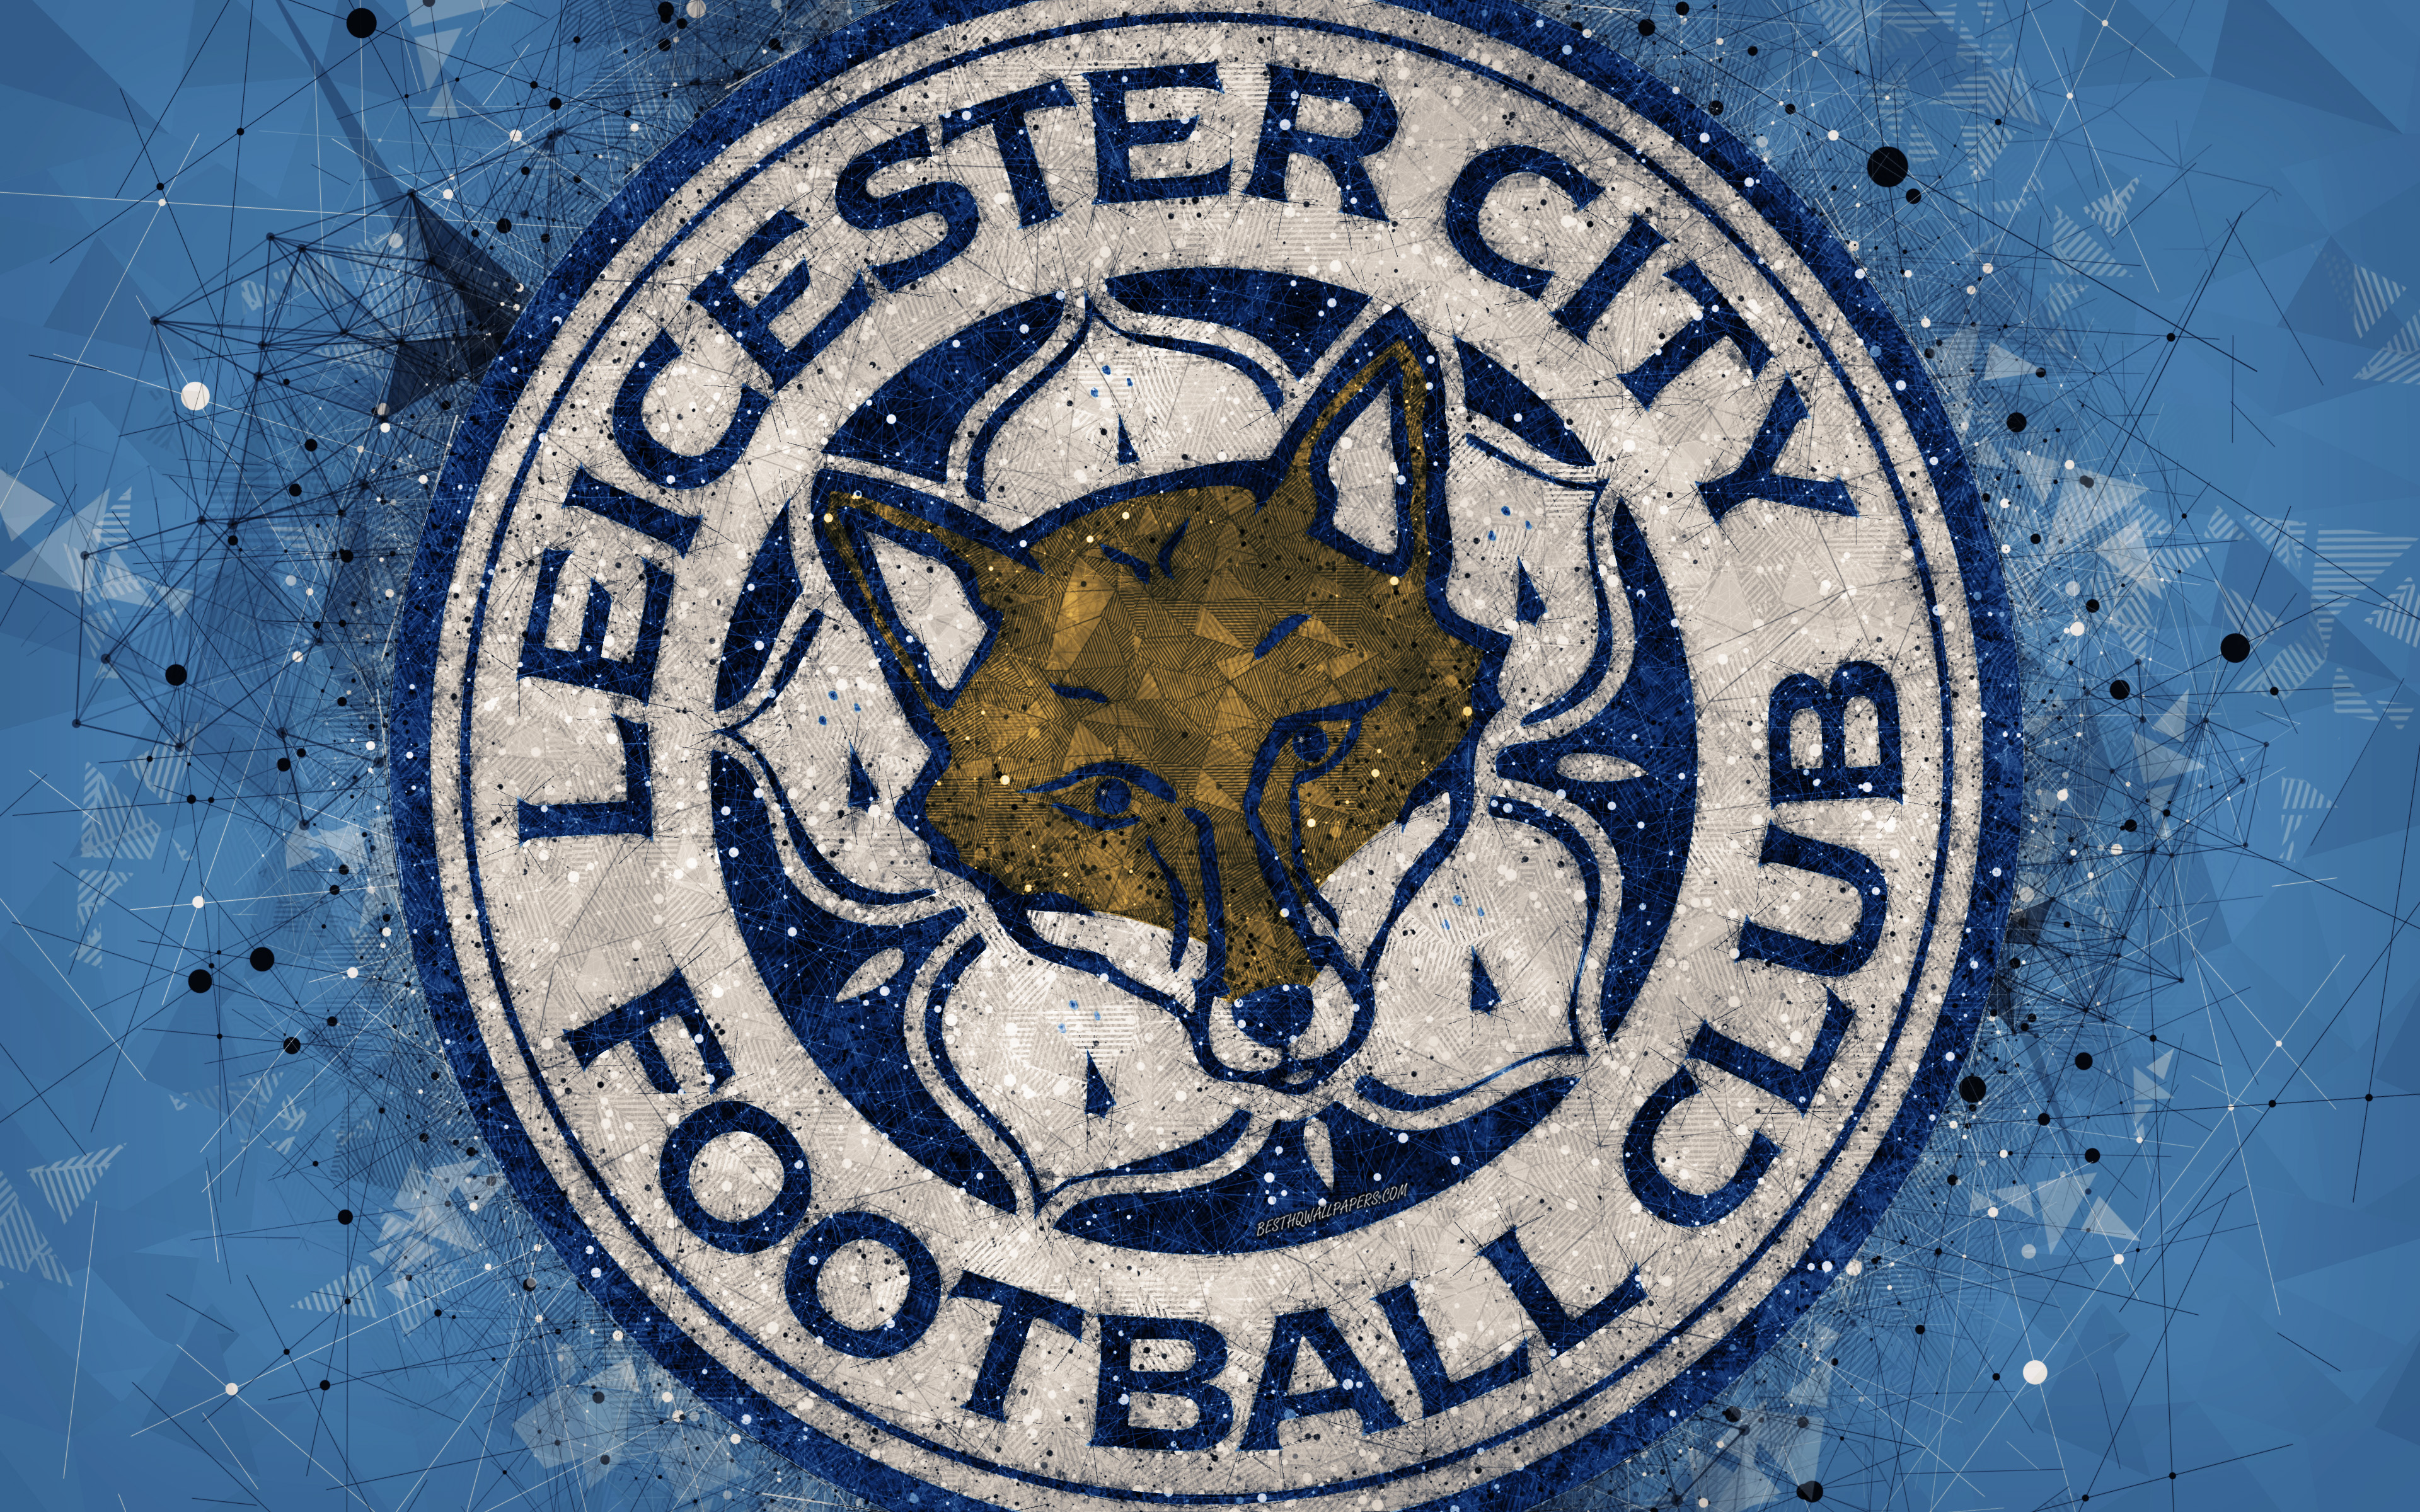 Download wallpapers Leicester City FC 4k logo geometric art 3840x2400